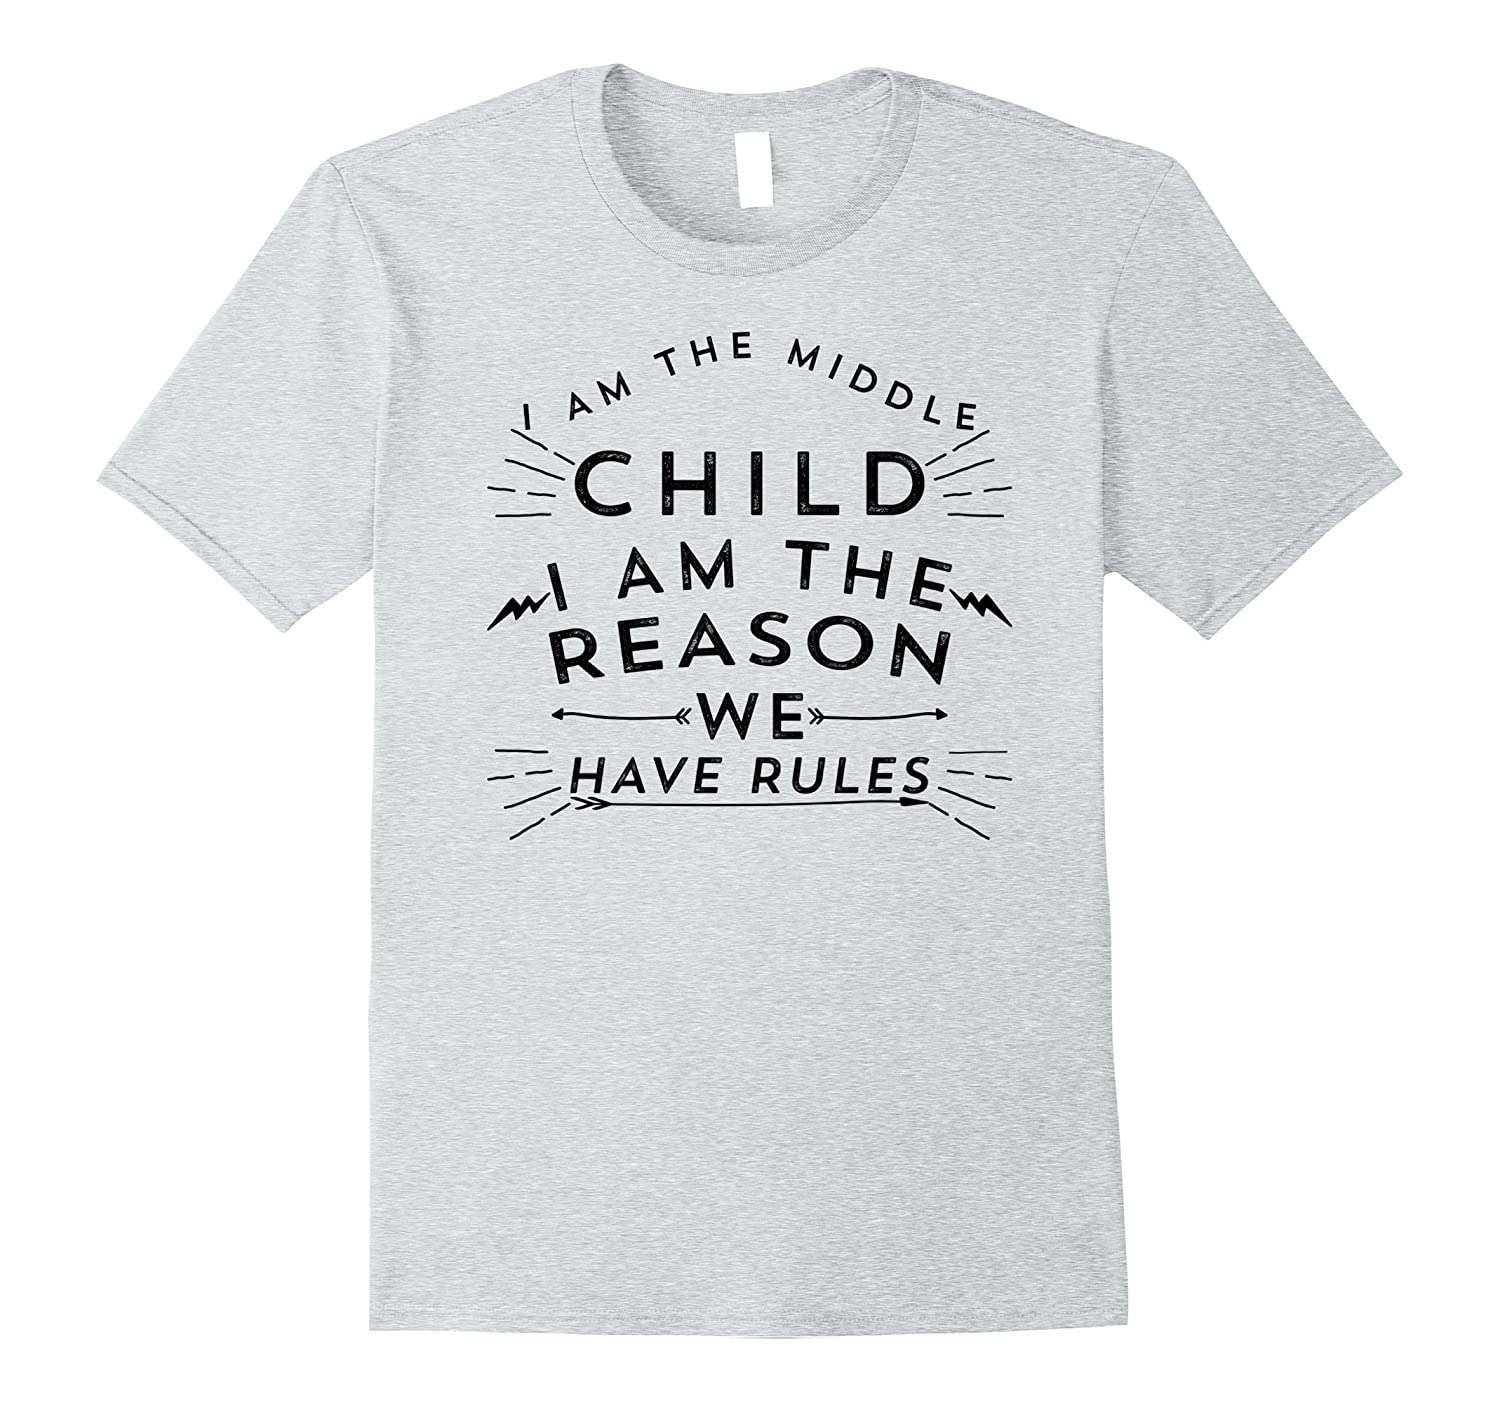 20c19941 I Am The Middle Child I'm The Reason We Have Rules Funny Tee-ah my ...